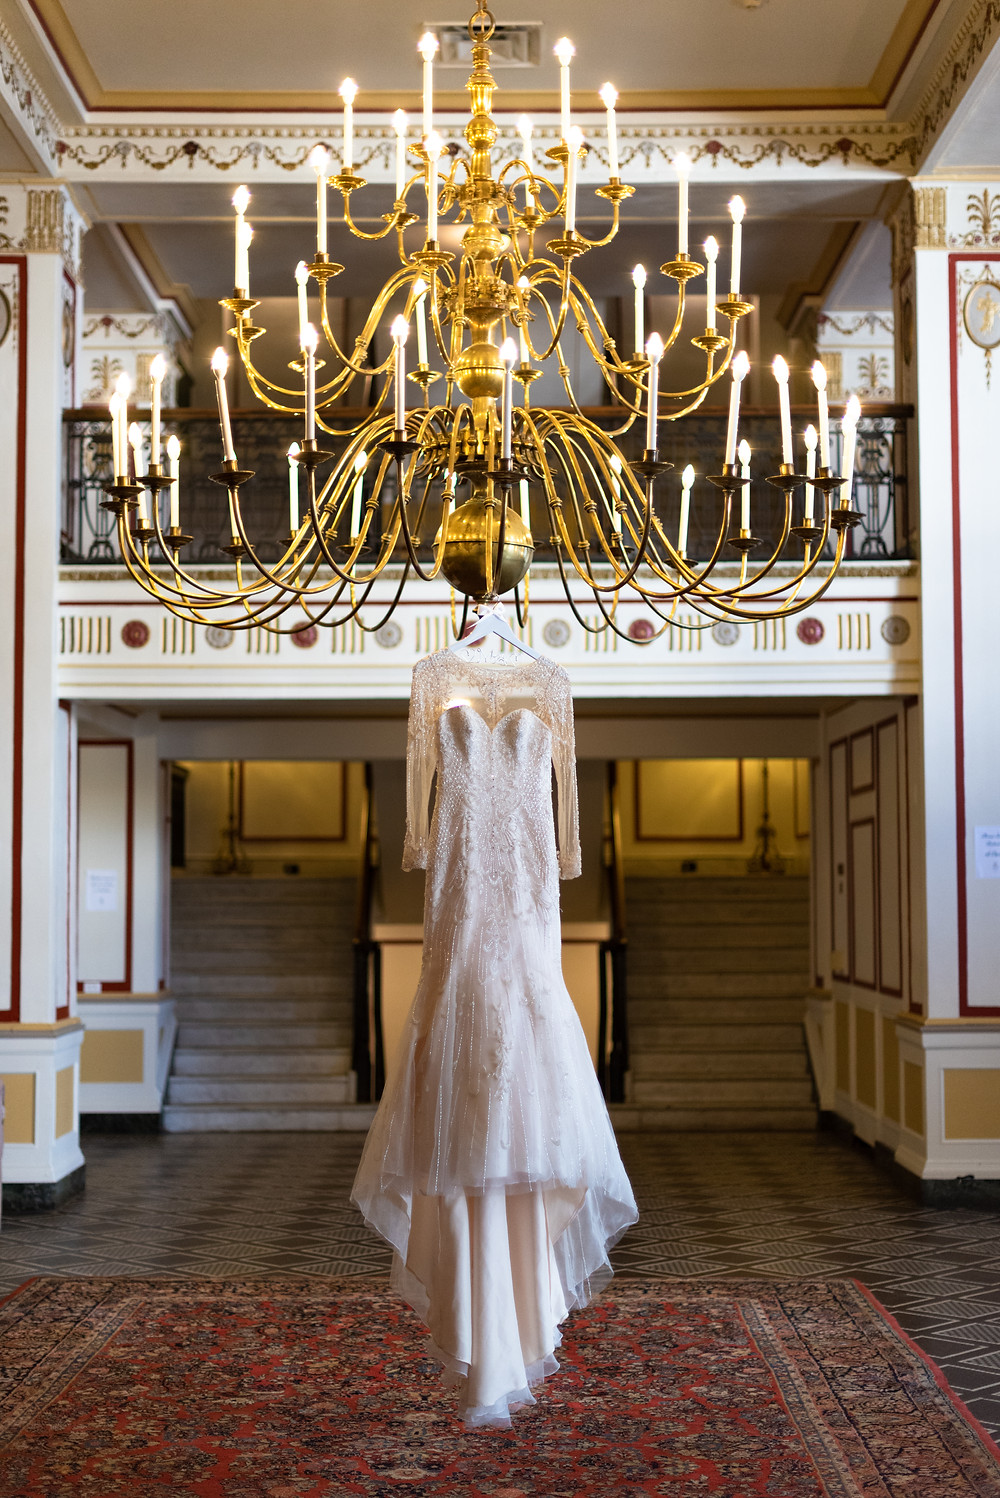 Wedding dress hanging from chandelier at the George Washington Hotel